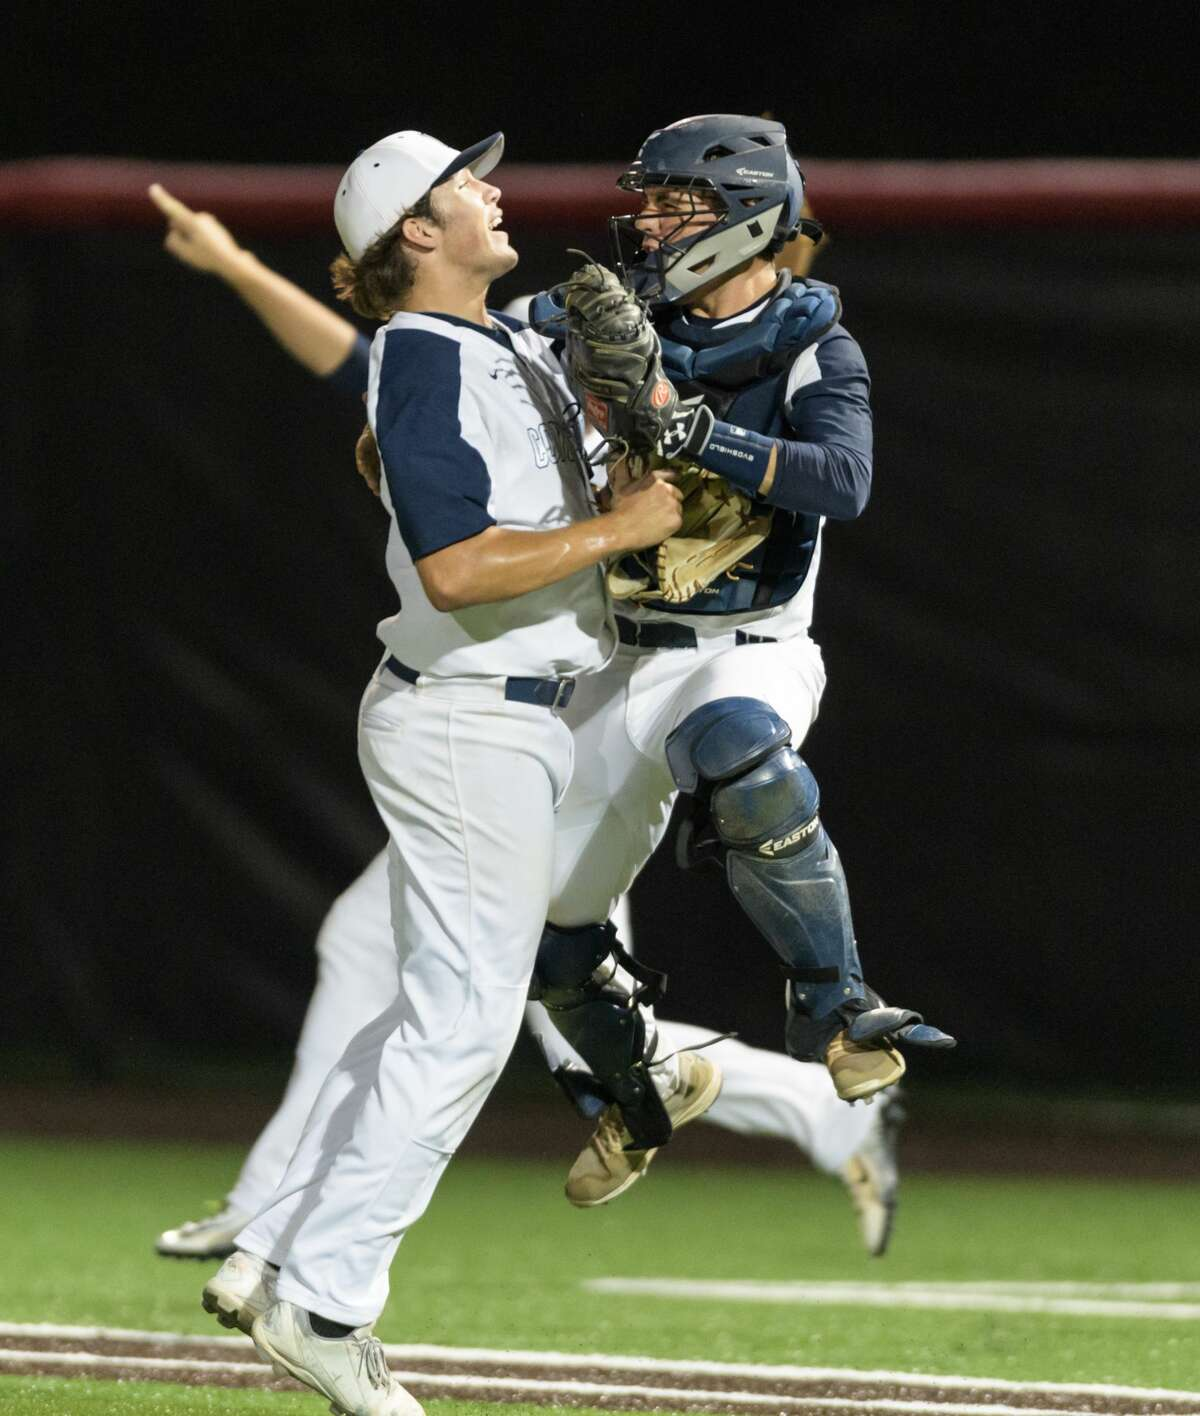 Caleb Black (18) of the Concordia Lutheran Crusaders chest bumps catcher, Hunter McQuary (3) after defeating the St. Pius X Panthers 8-2 in a TAPPS baseball playoff game on Wednesday, May 10, 2017 at the Crosby High School Baseball Field in Crosby, Texas.